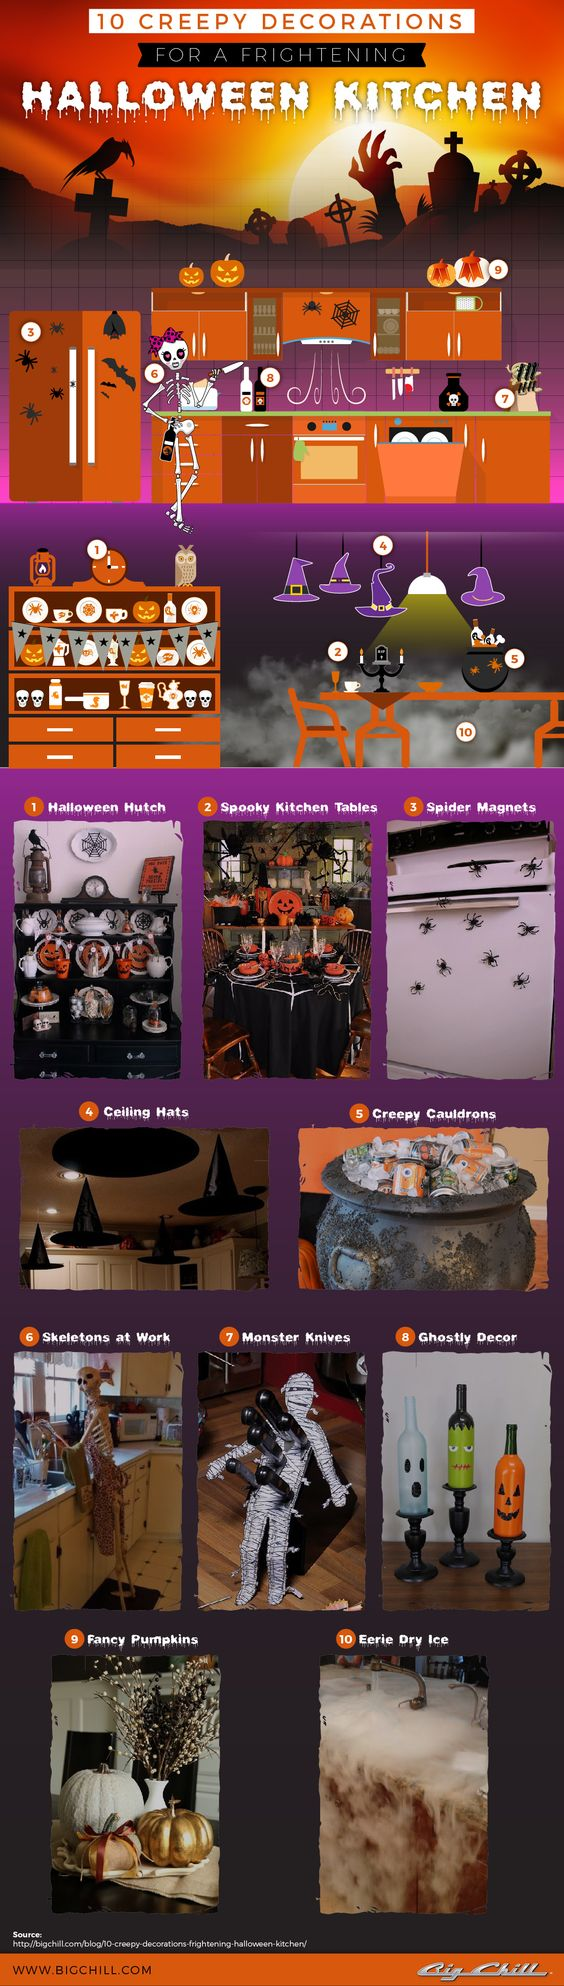 creepy decorations for a frightening halloween kitchen ideas bigchillcom